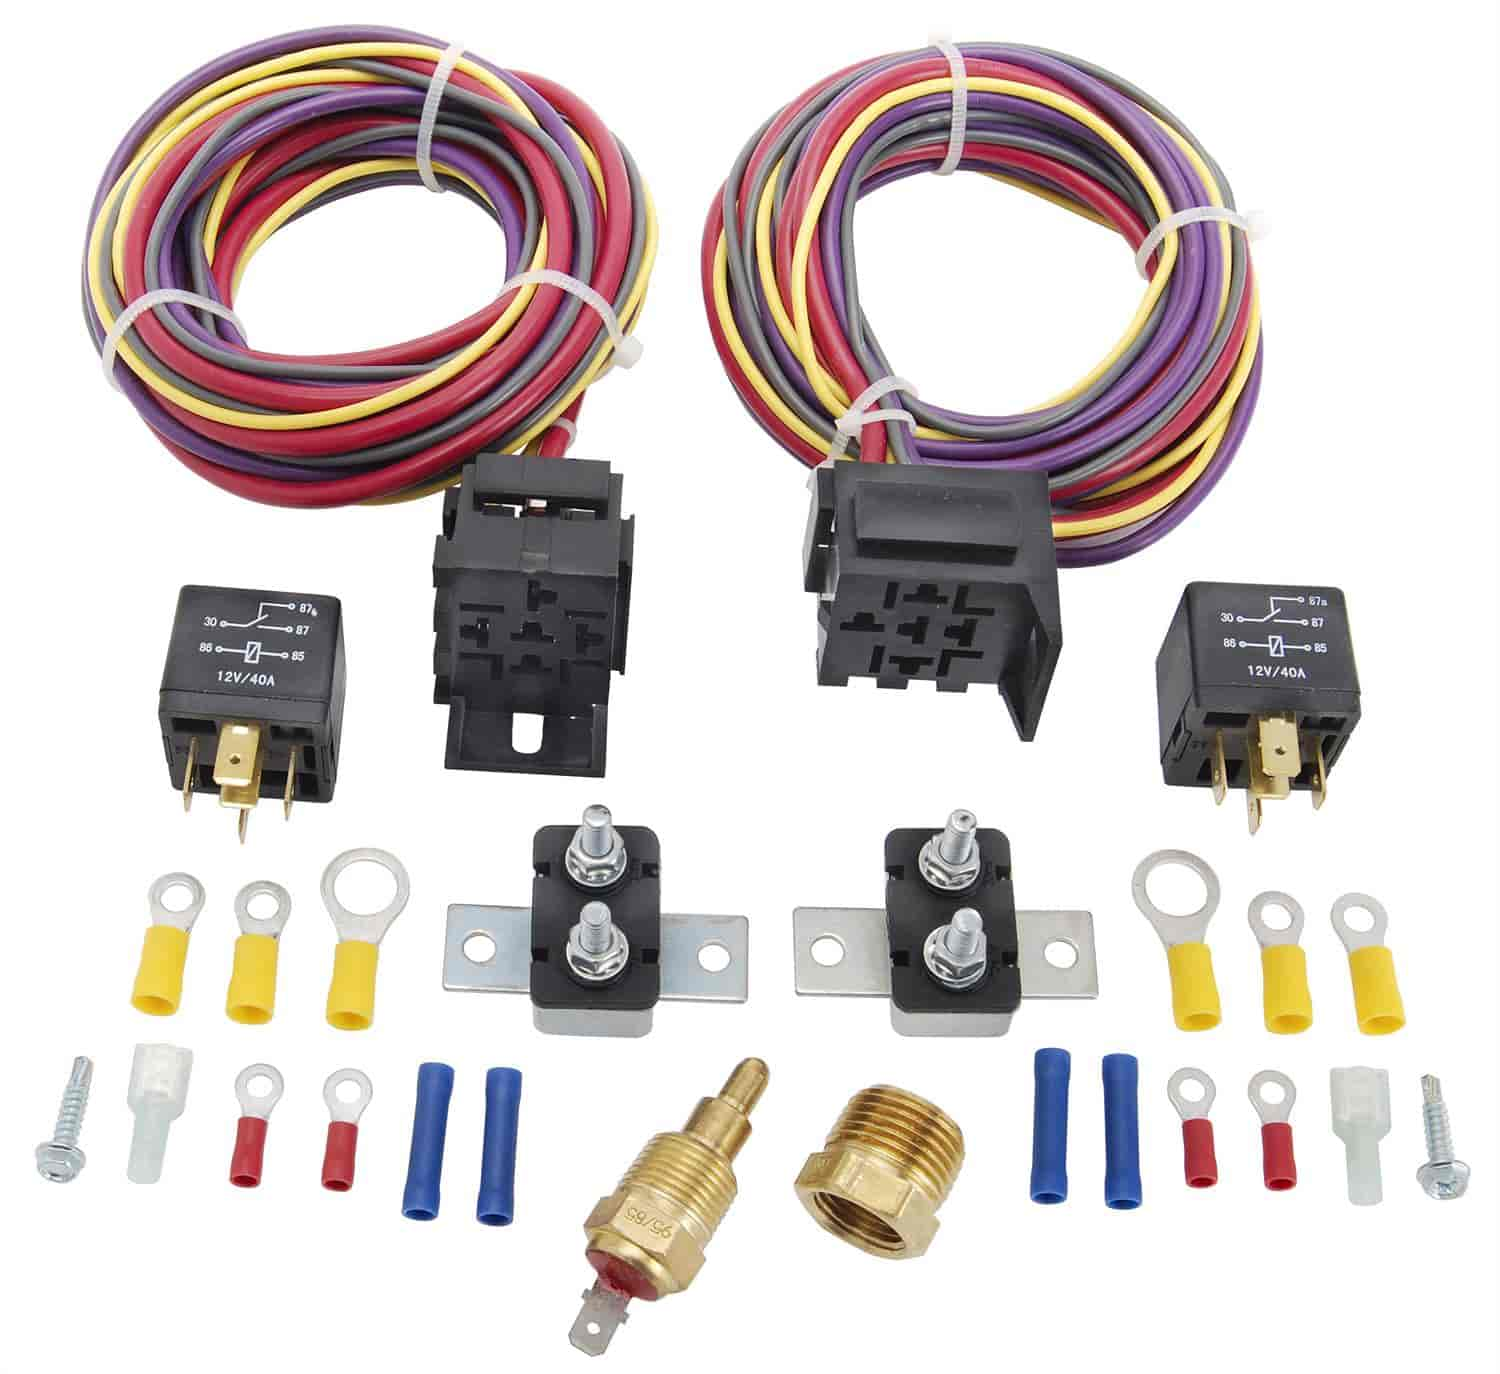 555 10571 jegs performance products 10571 dual fan wiring harness & relay jegs universal wiring harness at readyjetset.co